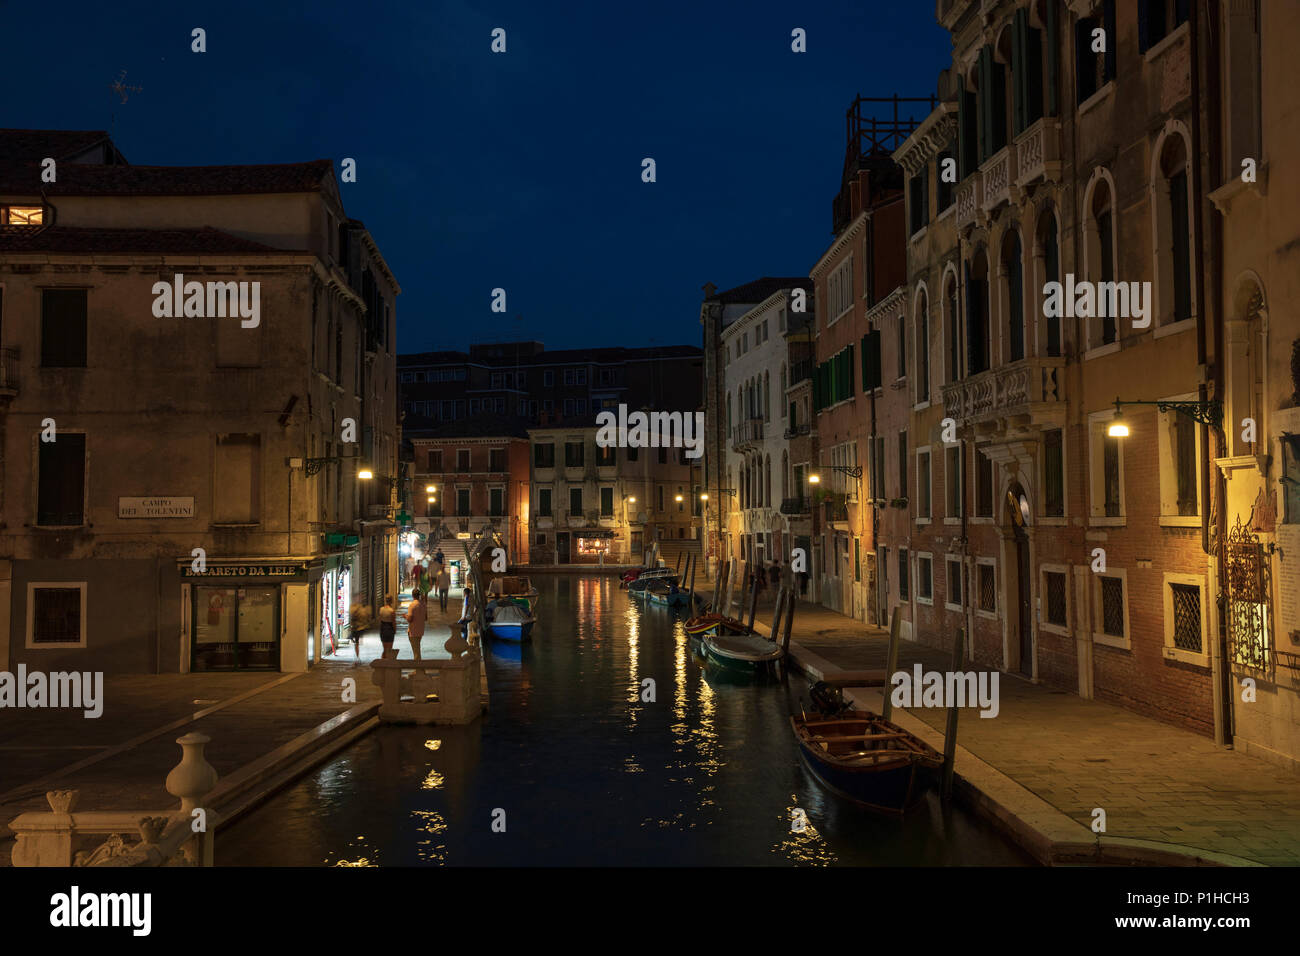 View down Fondamenta Condulmer as seen from Ponte dei Tolentini, Venice, Italy. Stock Photo